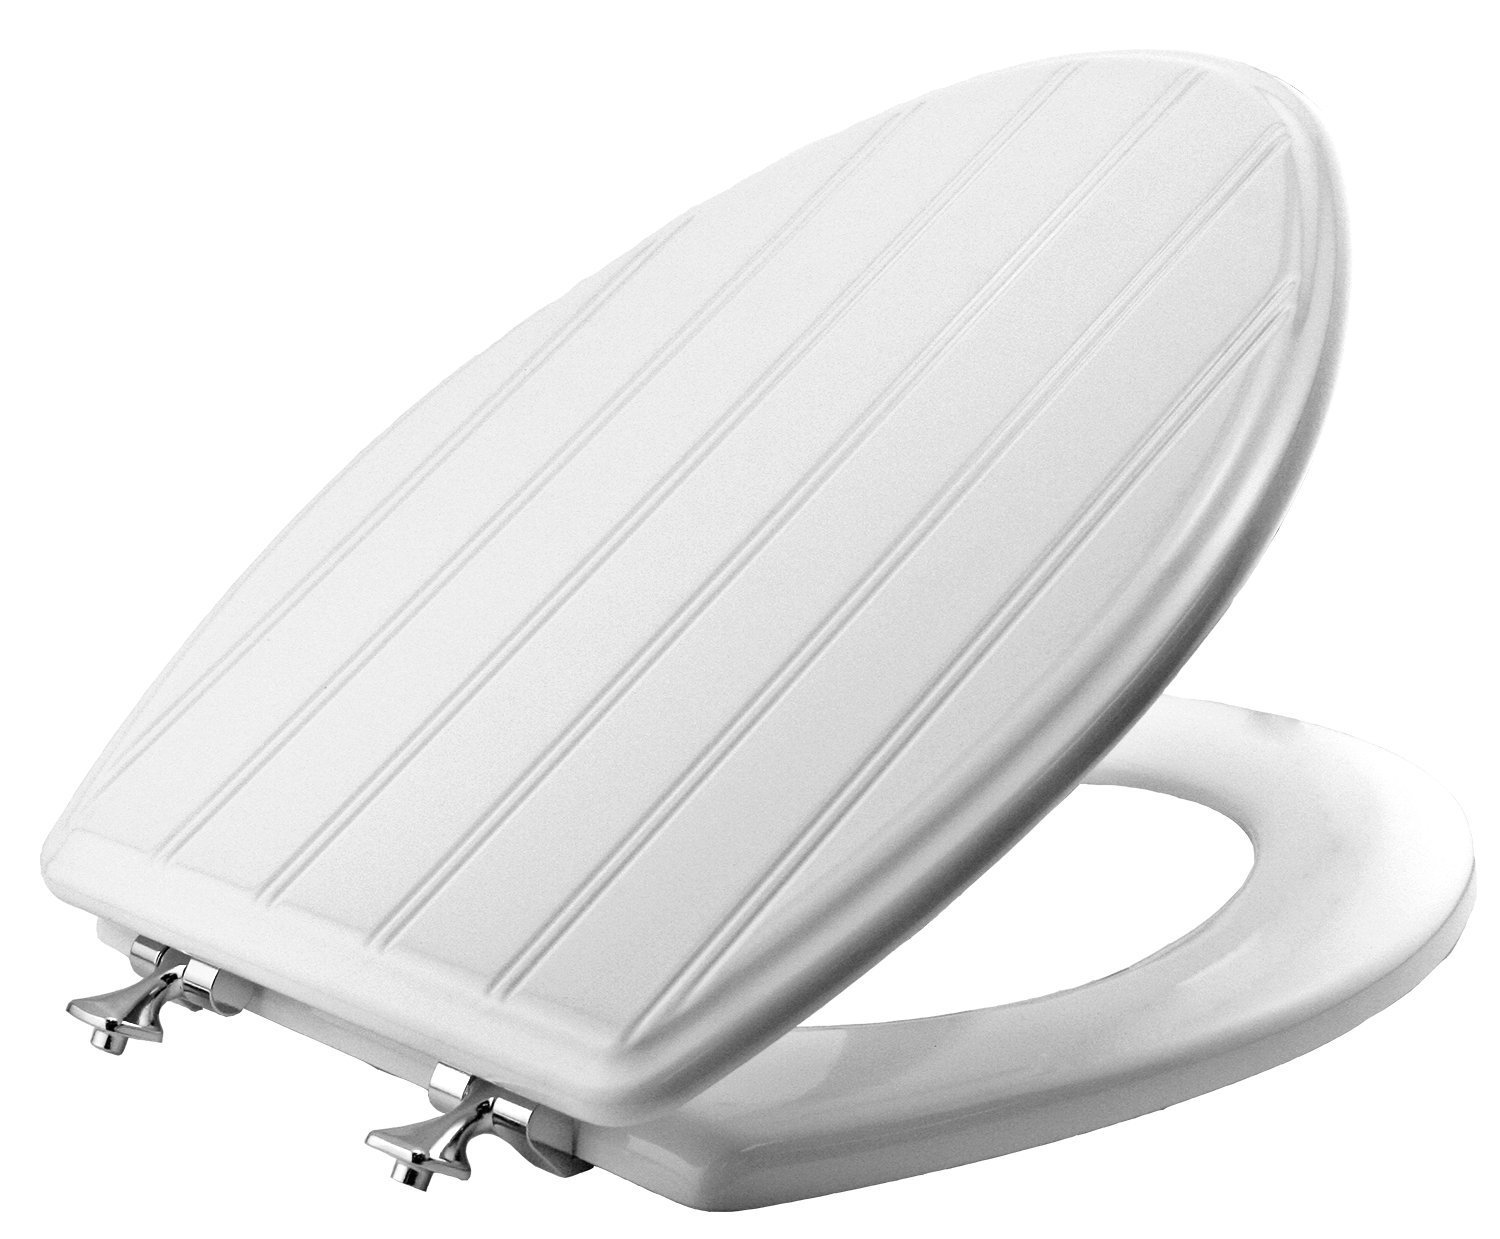 MAYFAIR Breadboard Toilet Seat with Chrome Hinges will Never Loosen, ELONGATED, Durable Enameled Wood, White, 129CPA Bemis